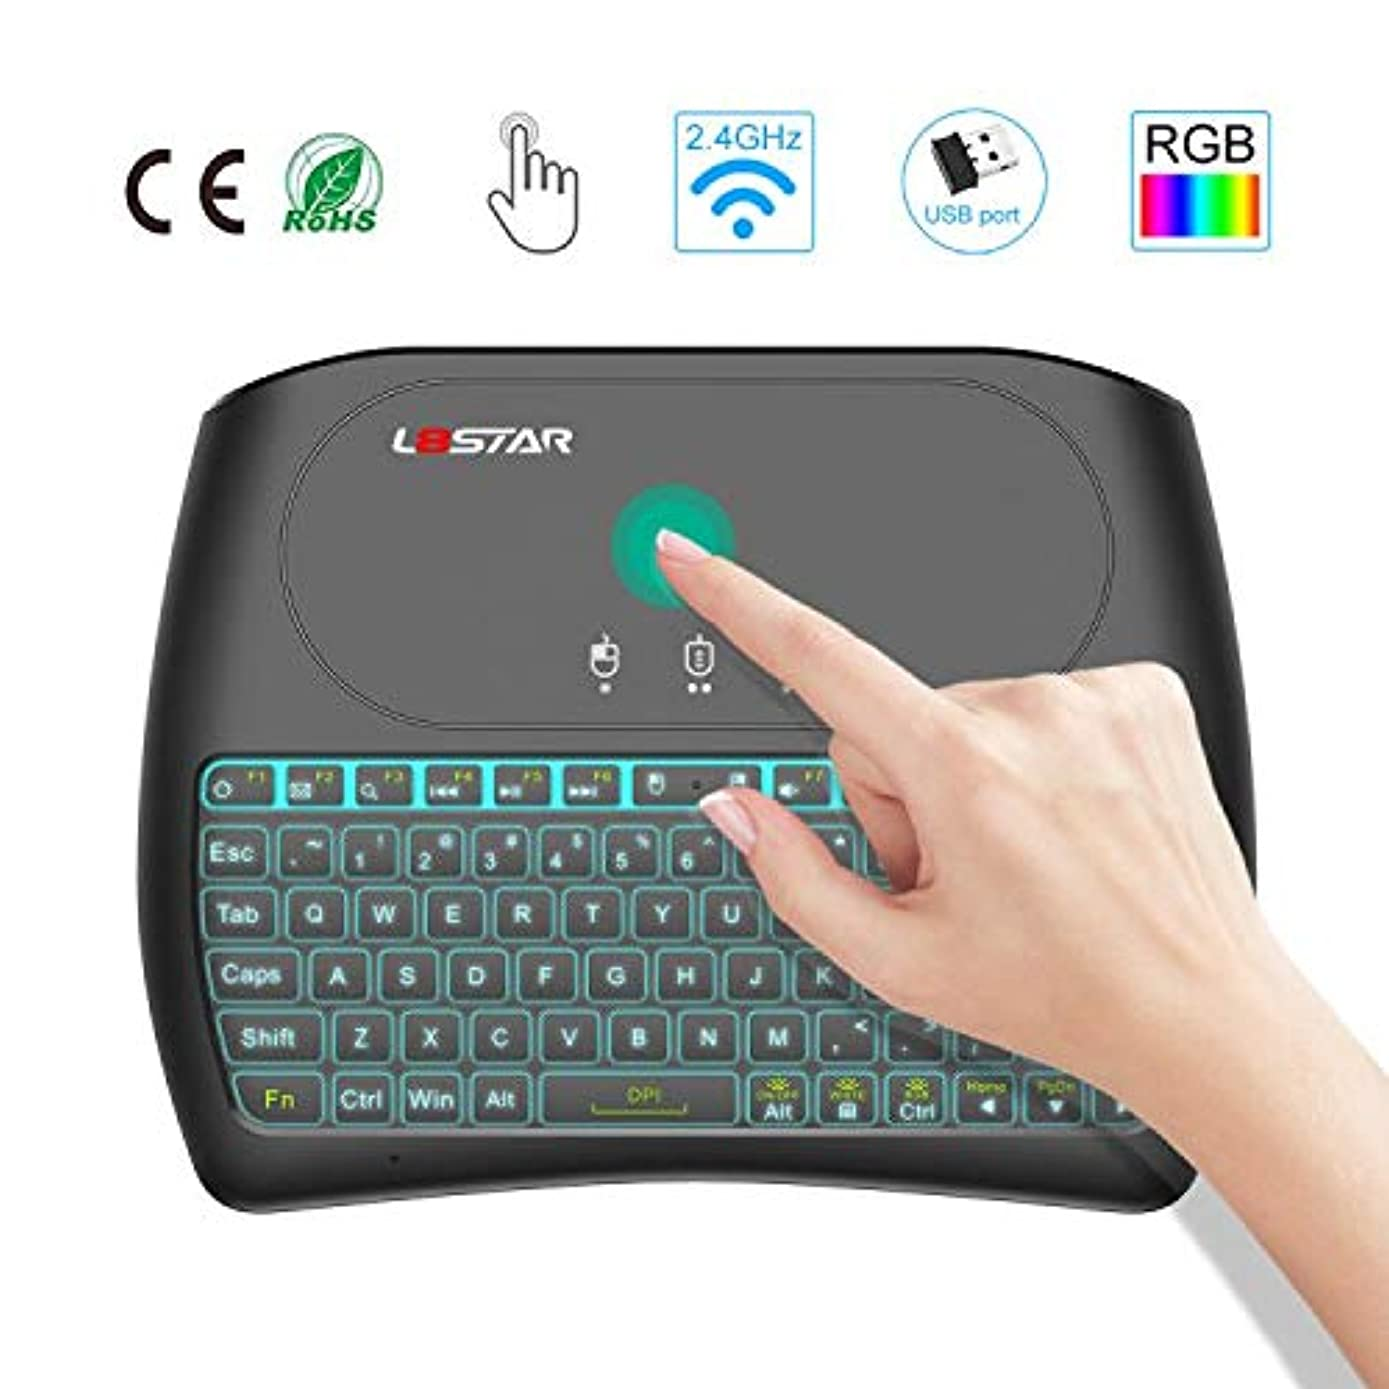 Mini Wireless Touchpad with Keyboard- 2.4Ghz Gaming Keyboard Air Mouse USB Handheld Rechargeable Multimedia Remote Control 7 Colors Keyboard Compatible with PC/Google Android TV Box and More